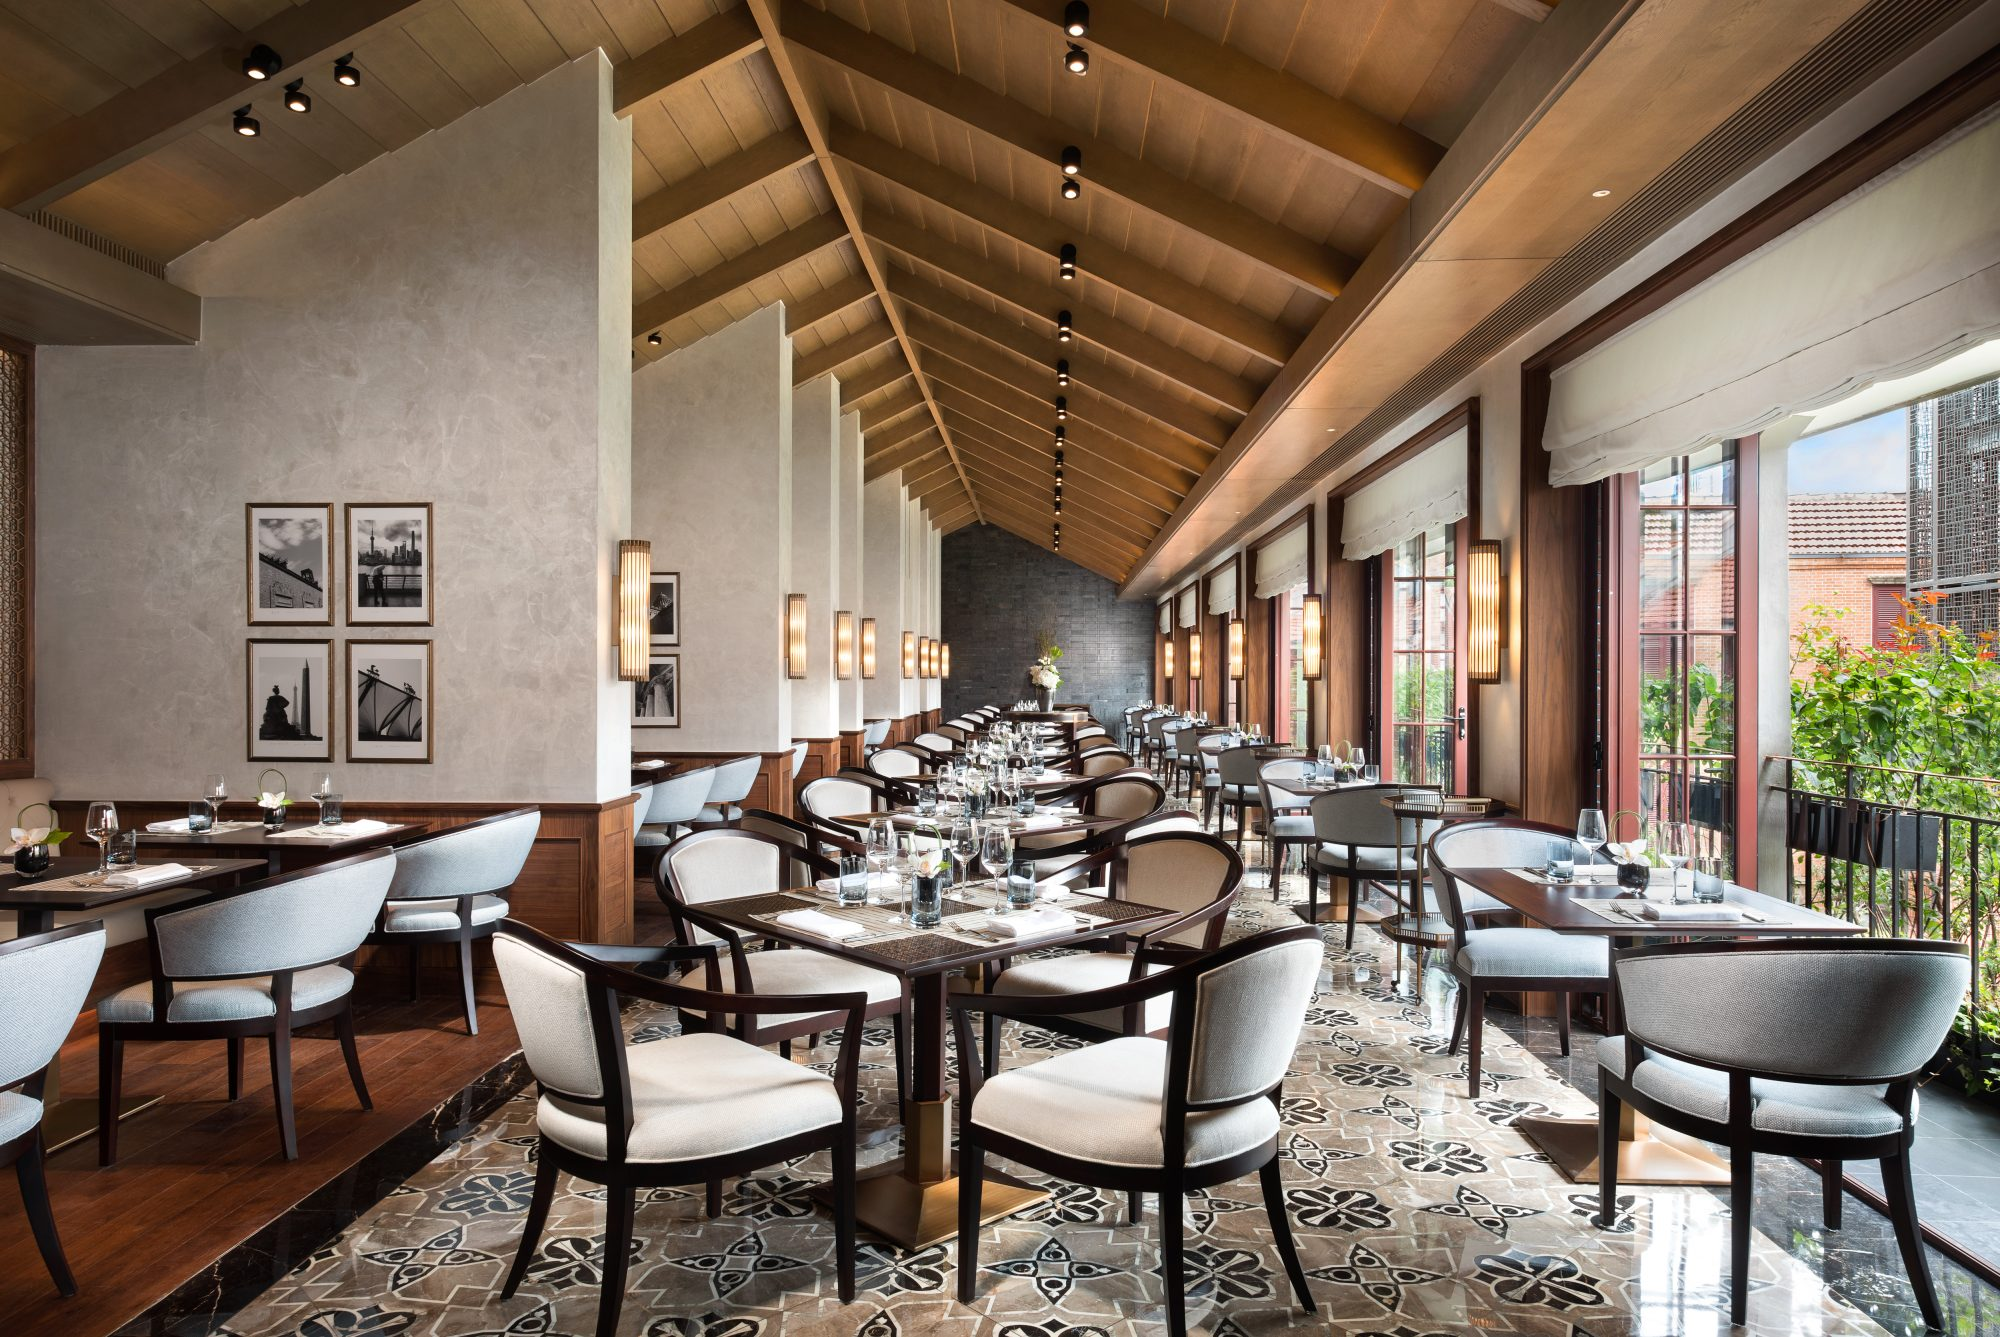 Shanghai's Michelin-Starred Restaurants Are Announced: See the 2019 List